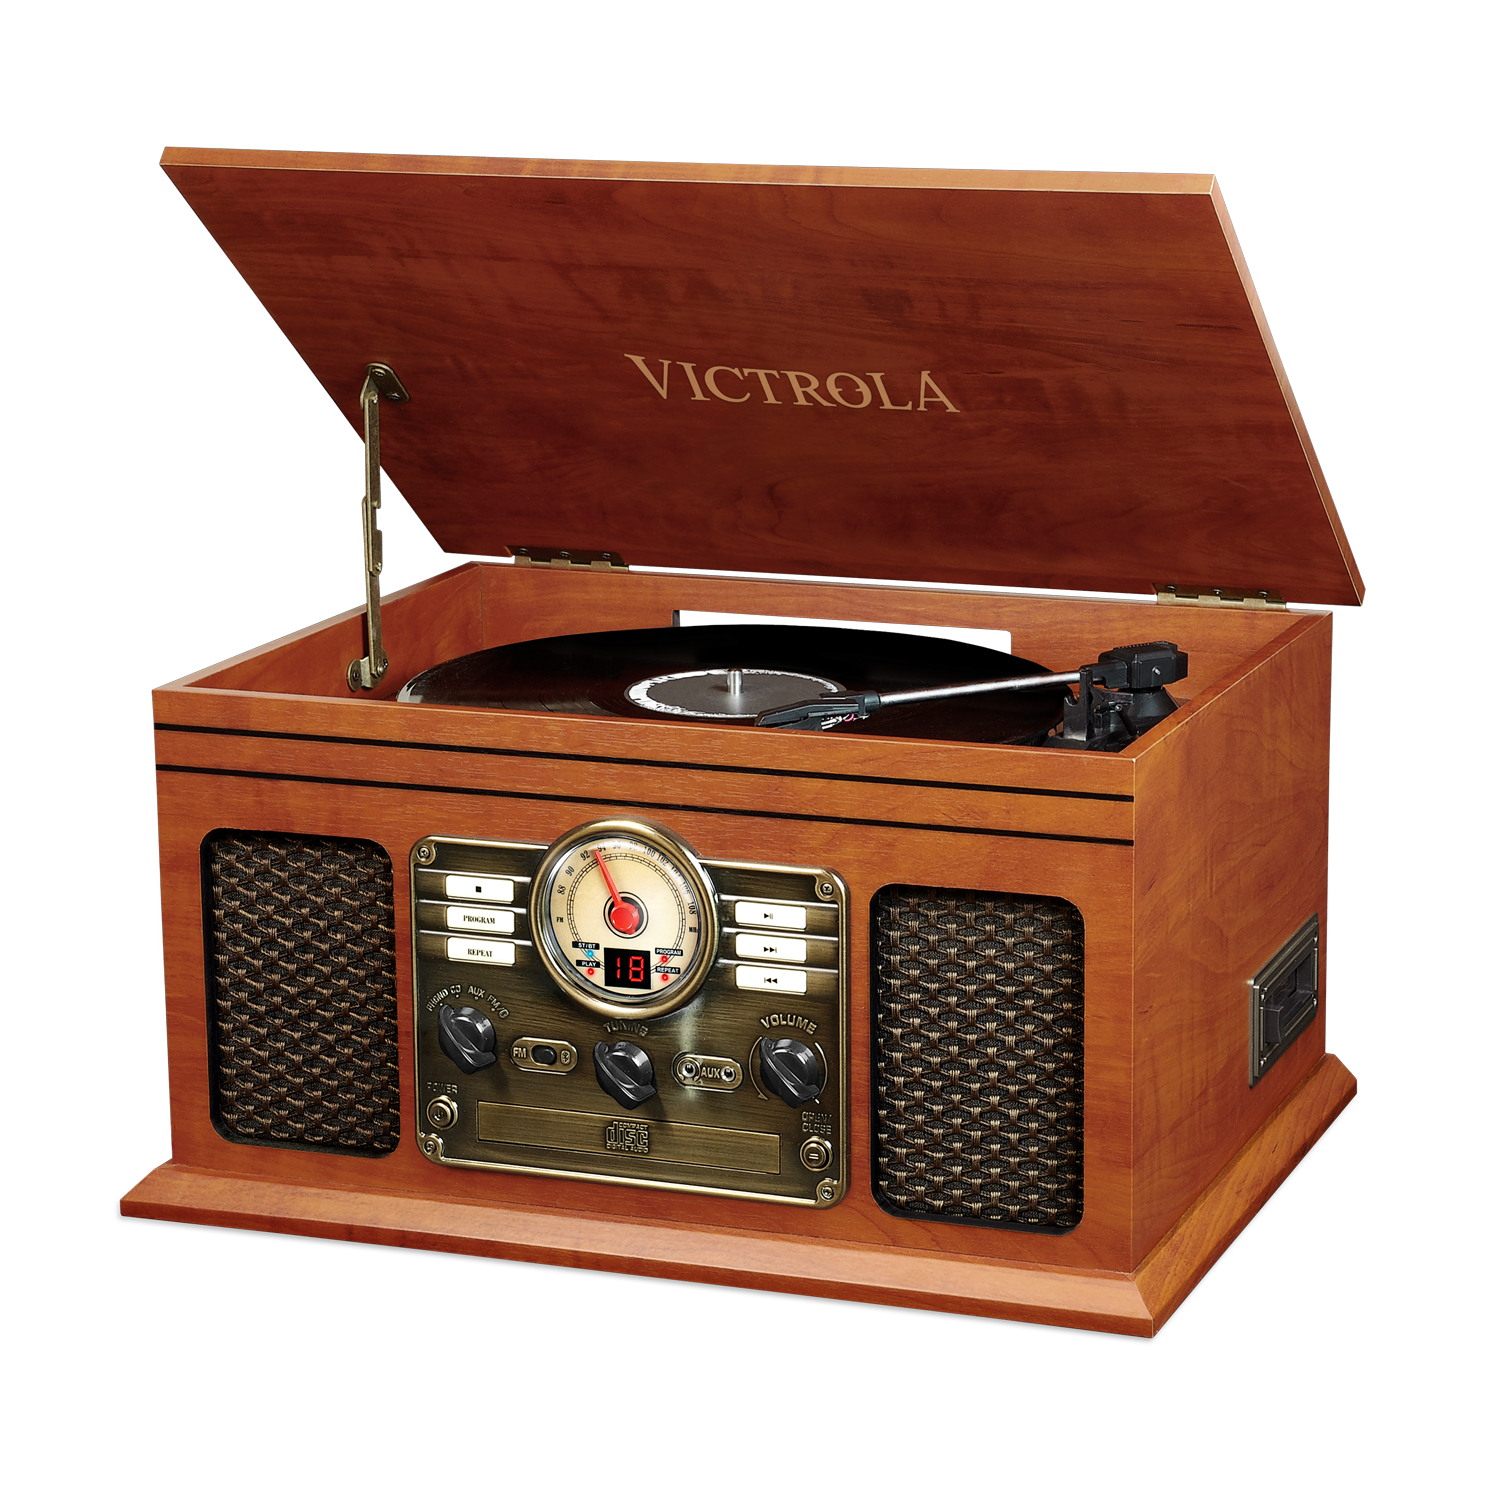 VTA-200B-MAH, 6-in-1 wooden centry record player, 3-speed, mahogany